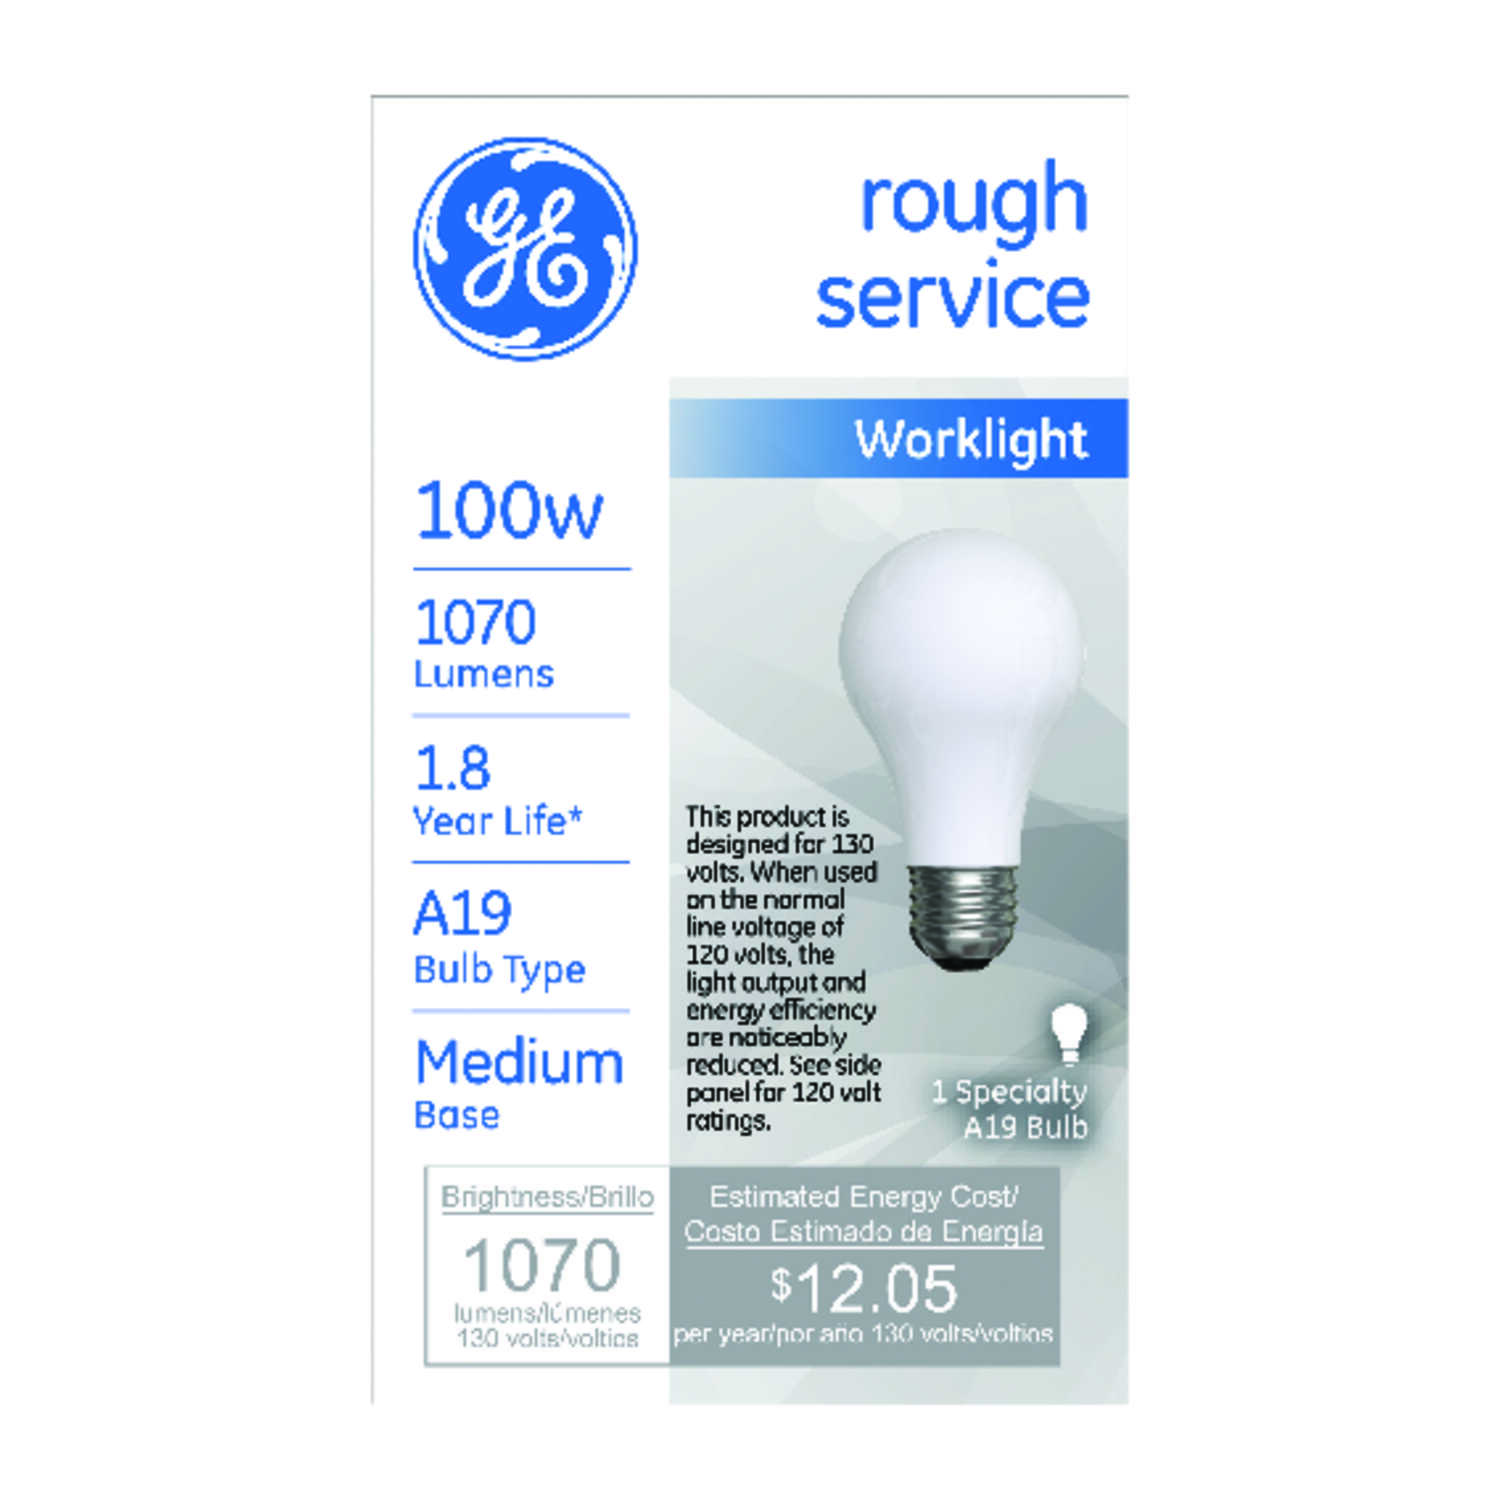 GE Lighting  rough service  100 watts A19  Incandescent Light Bulb  1070 lumens Soft White  Specialt